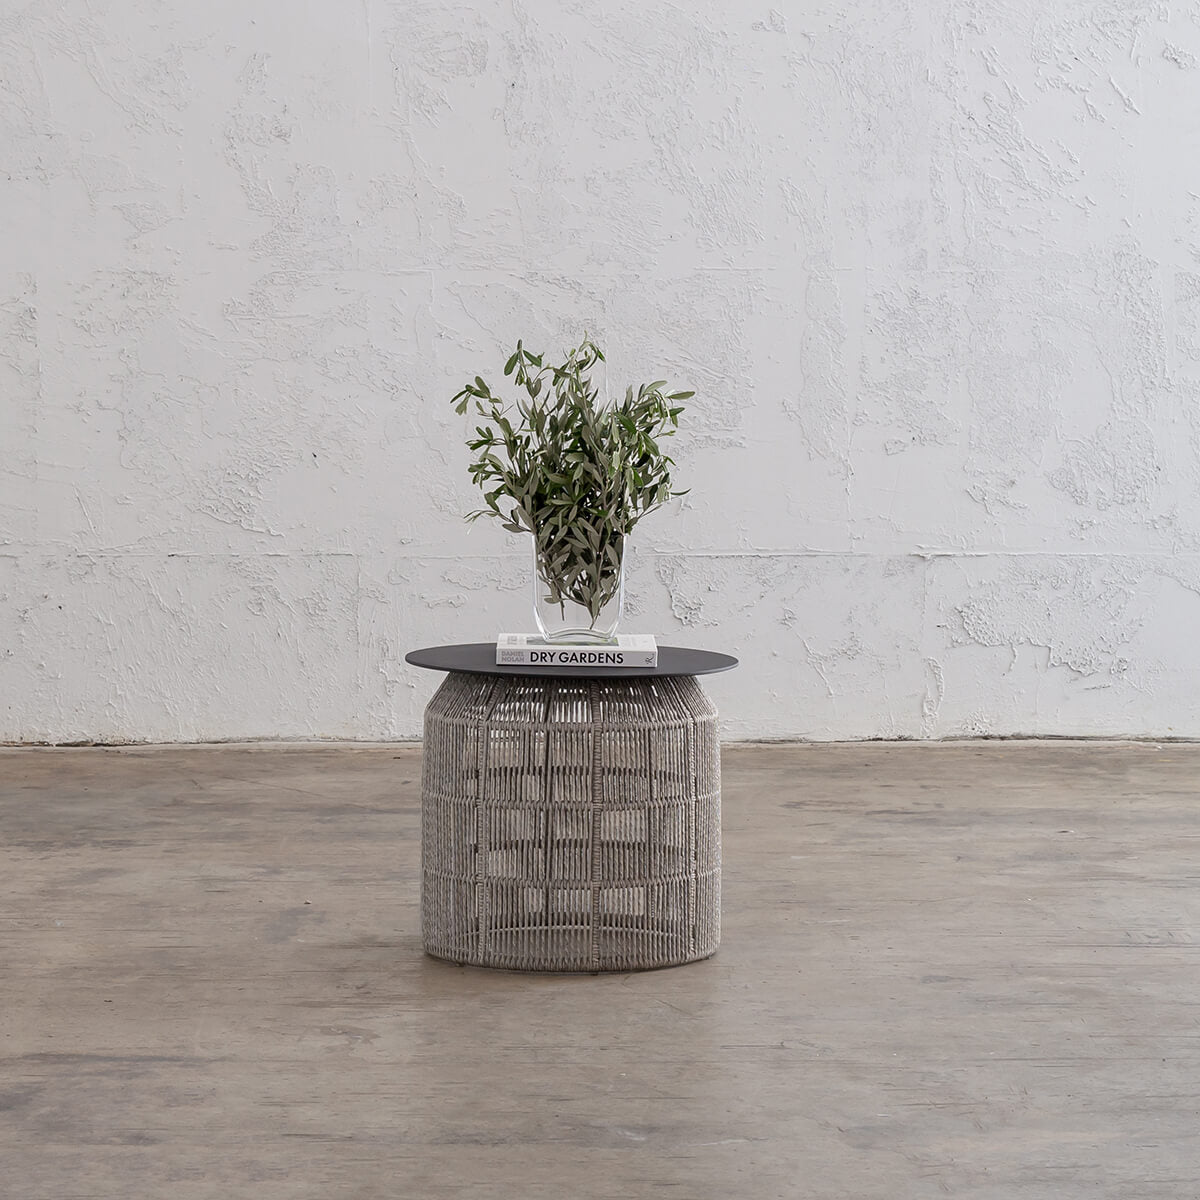 INIZIA WOVEN RATTAN INDOOR OUTDOOR  SIDE TABLE  |  ASH GREY  |  HAMPTONS MODERN RATTAN SIDE TABLE